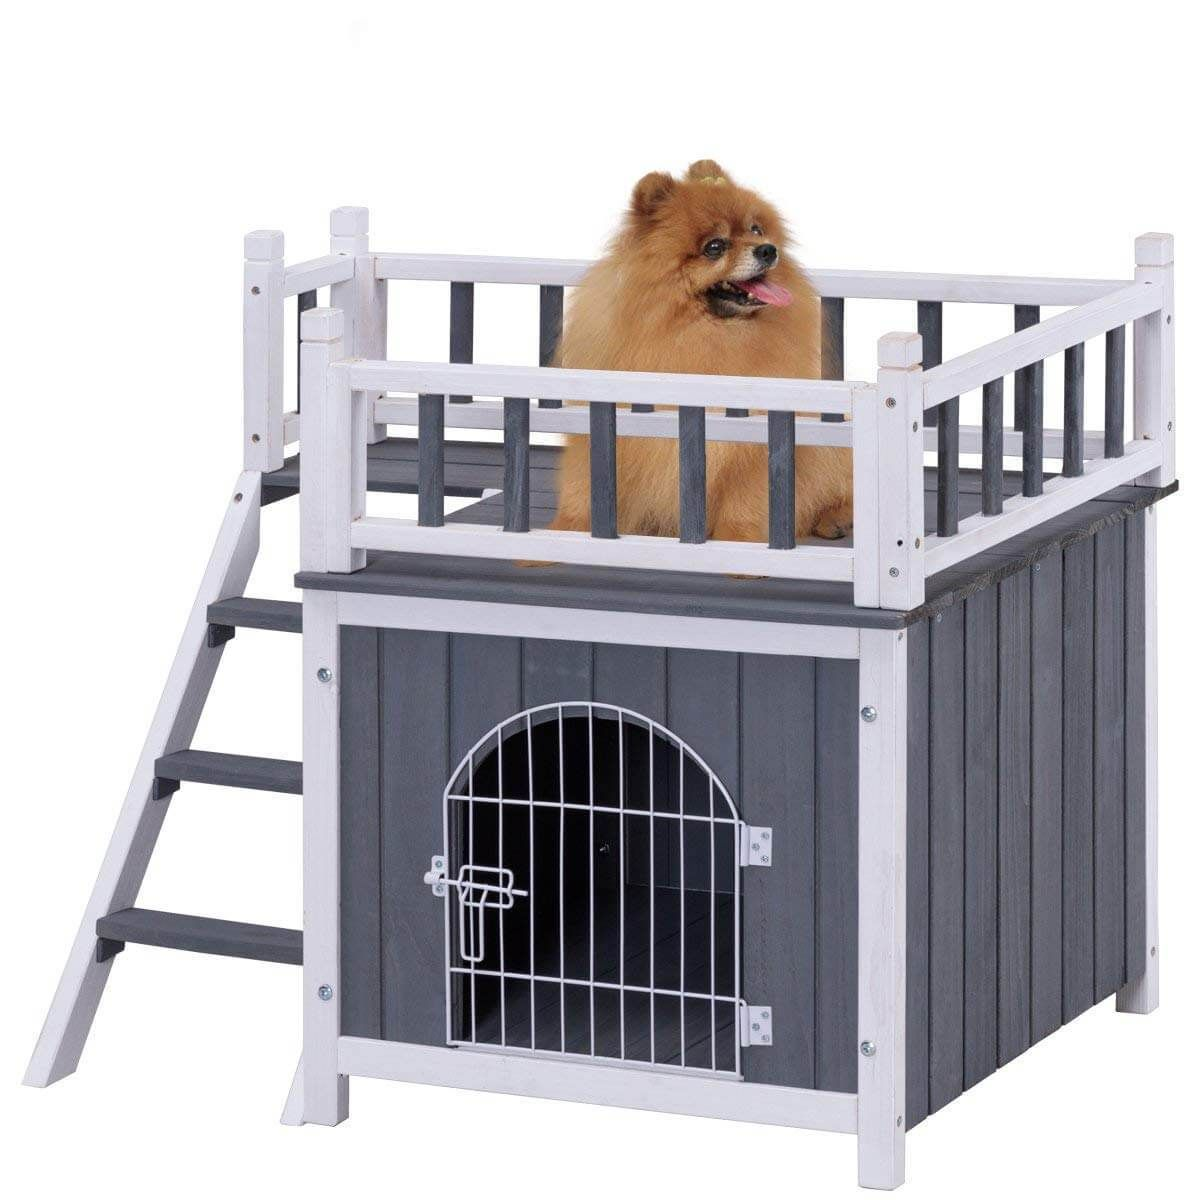 35 Amazing Dog Houses For Outdoors And Indoors The Best Cool